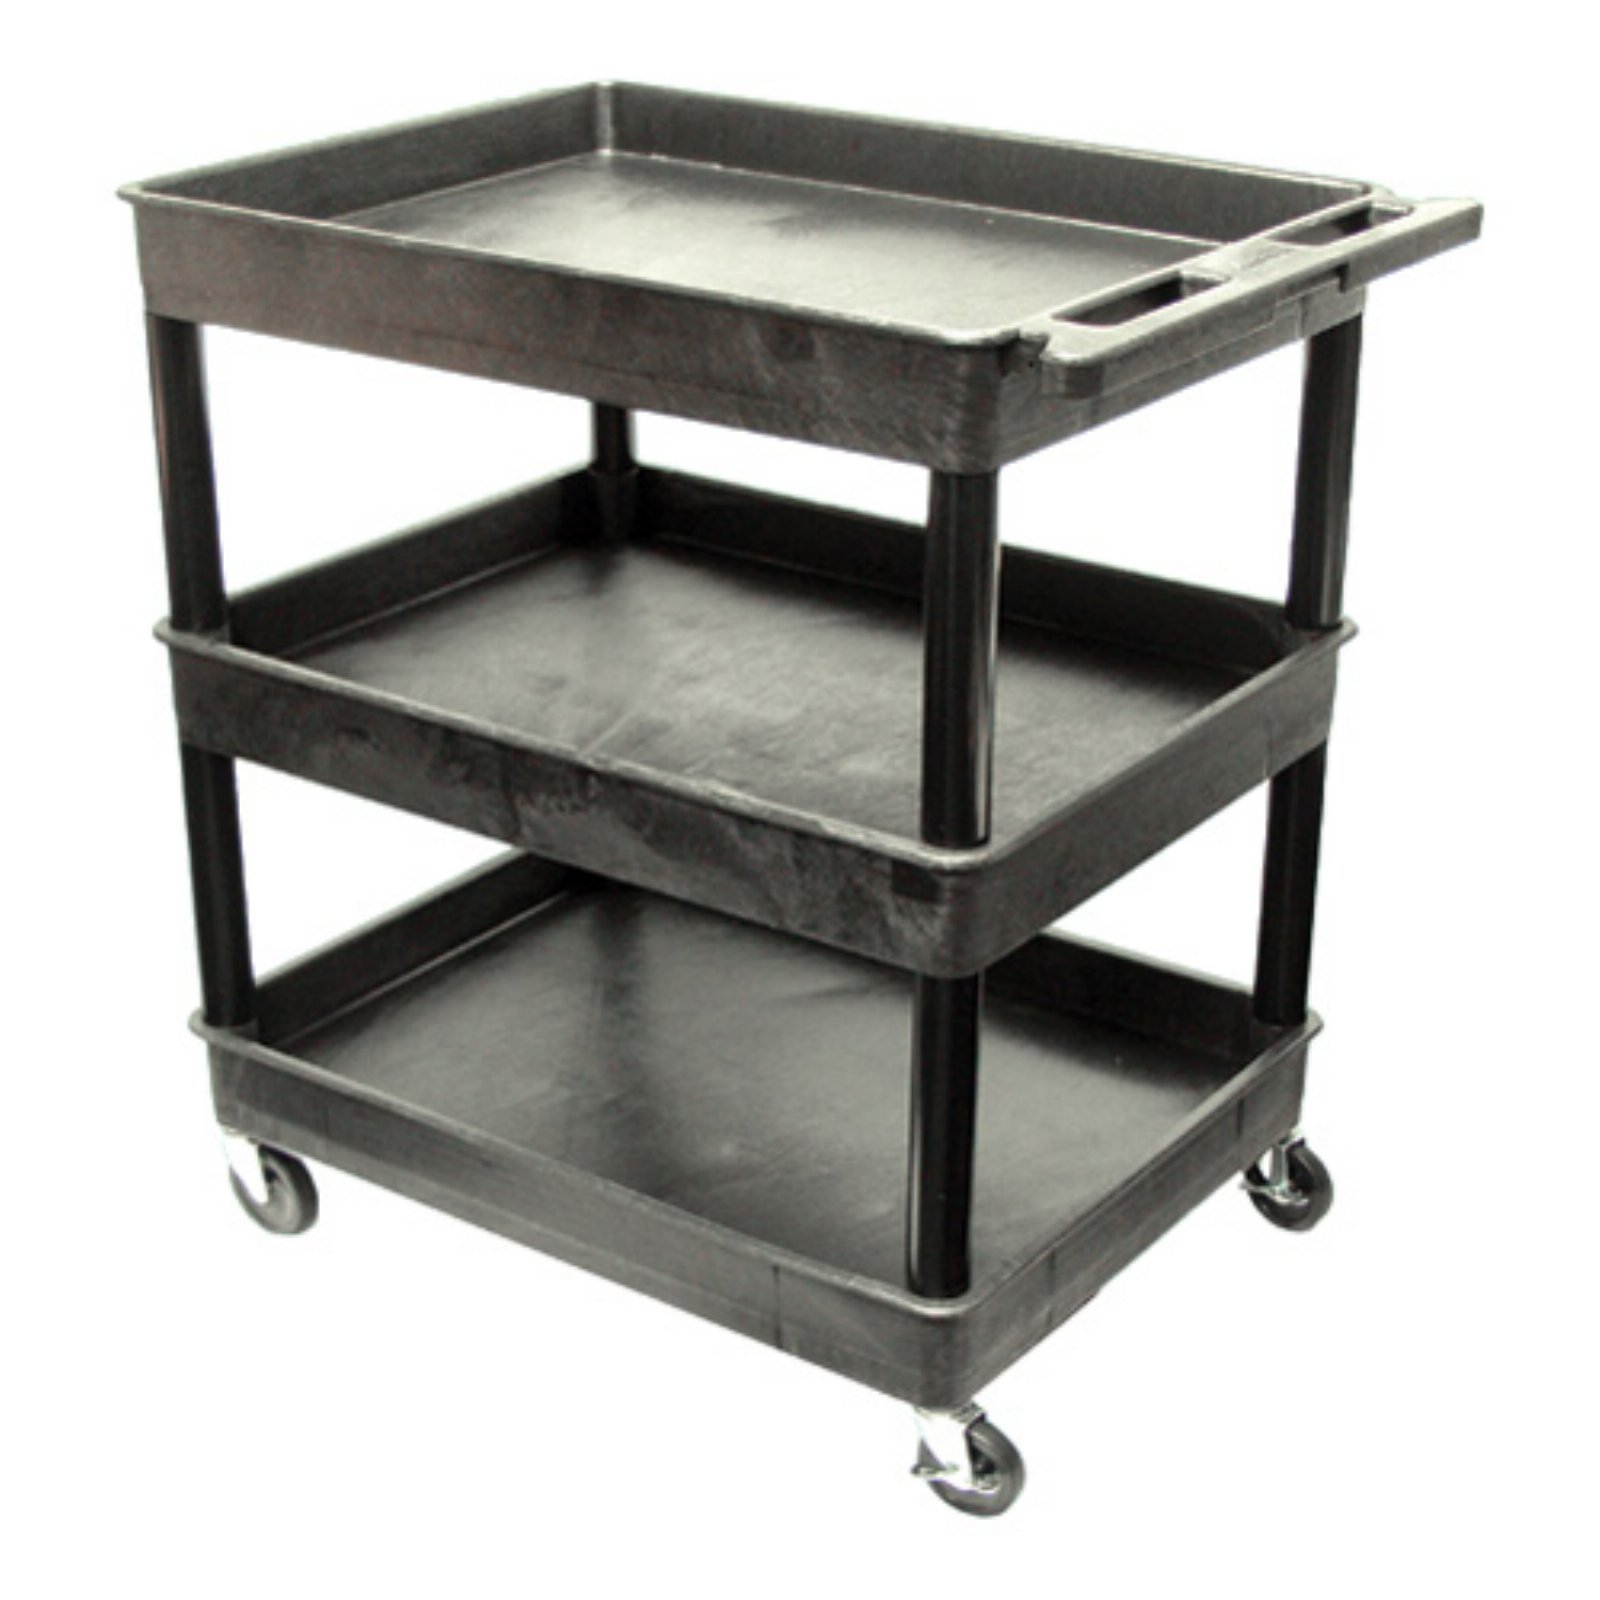 Luxor 3 Shelf Garden Center Cart with Casters